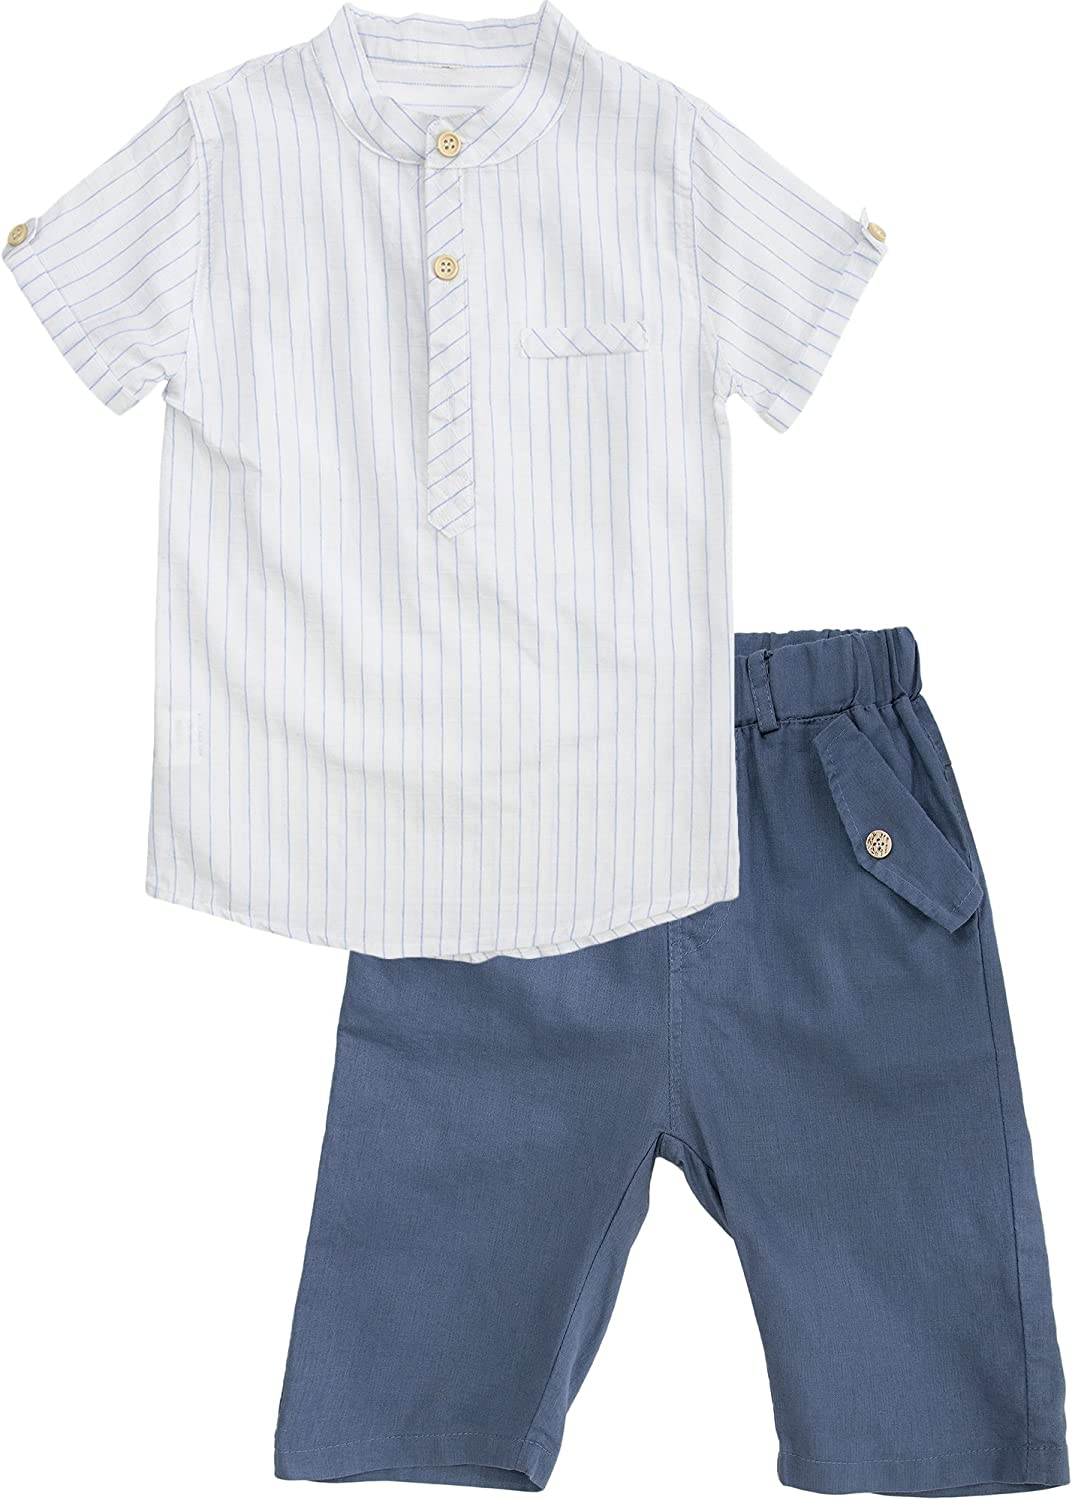 POBIDOBY Big Boys Cotton Two-Pieces Tshirt Shirt and Short Sets Set